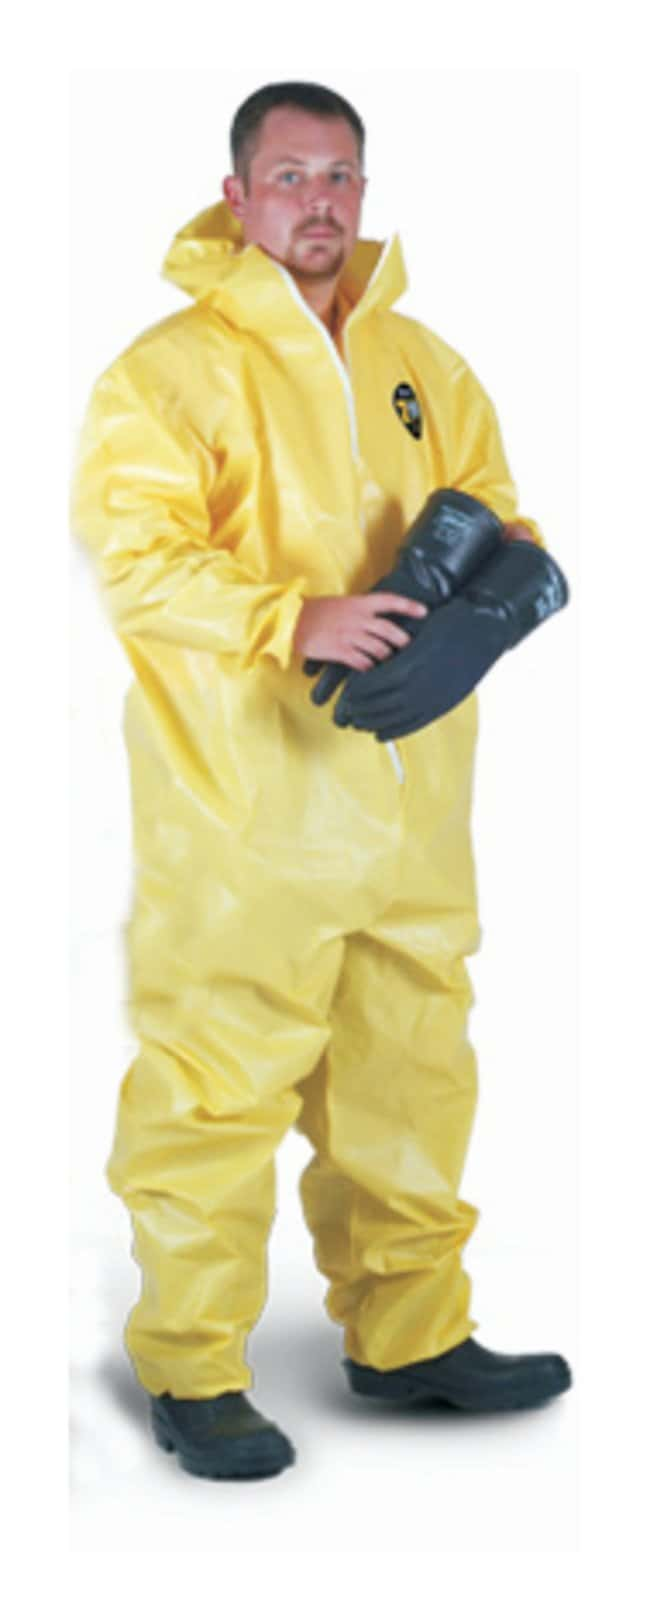 Kappler Zytron 100 Chemical-Resistant Coveralls Bound Seams; Collar, open